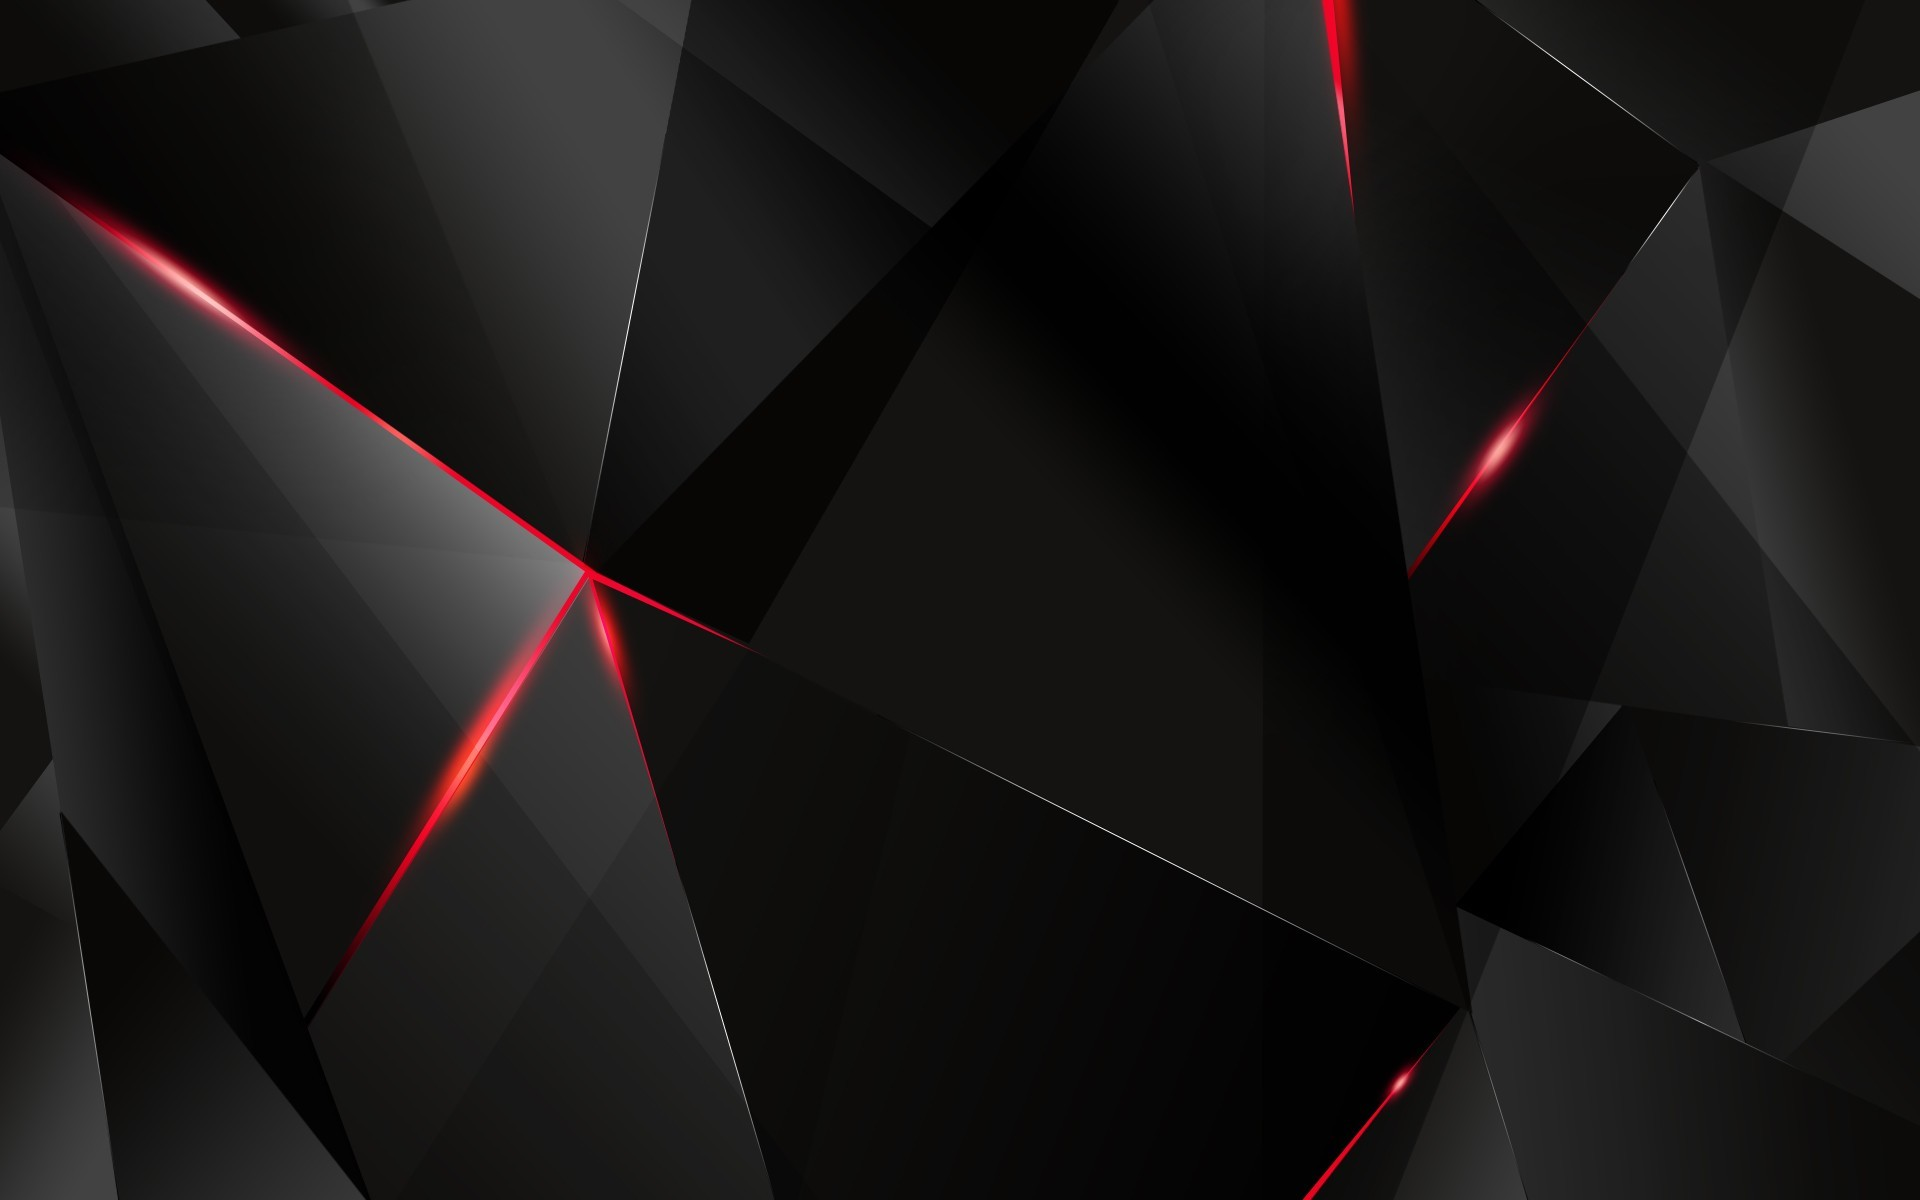 Red and Black Geometric Wallpaper for Computer hd background hd #6042